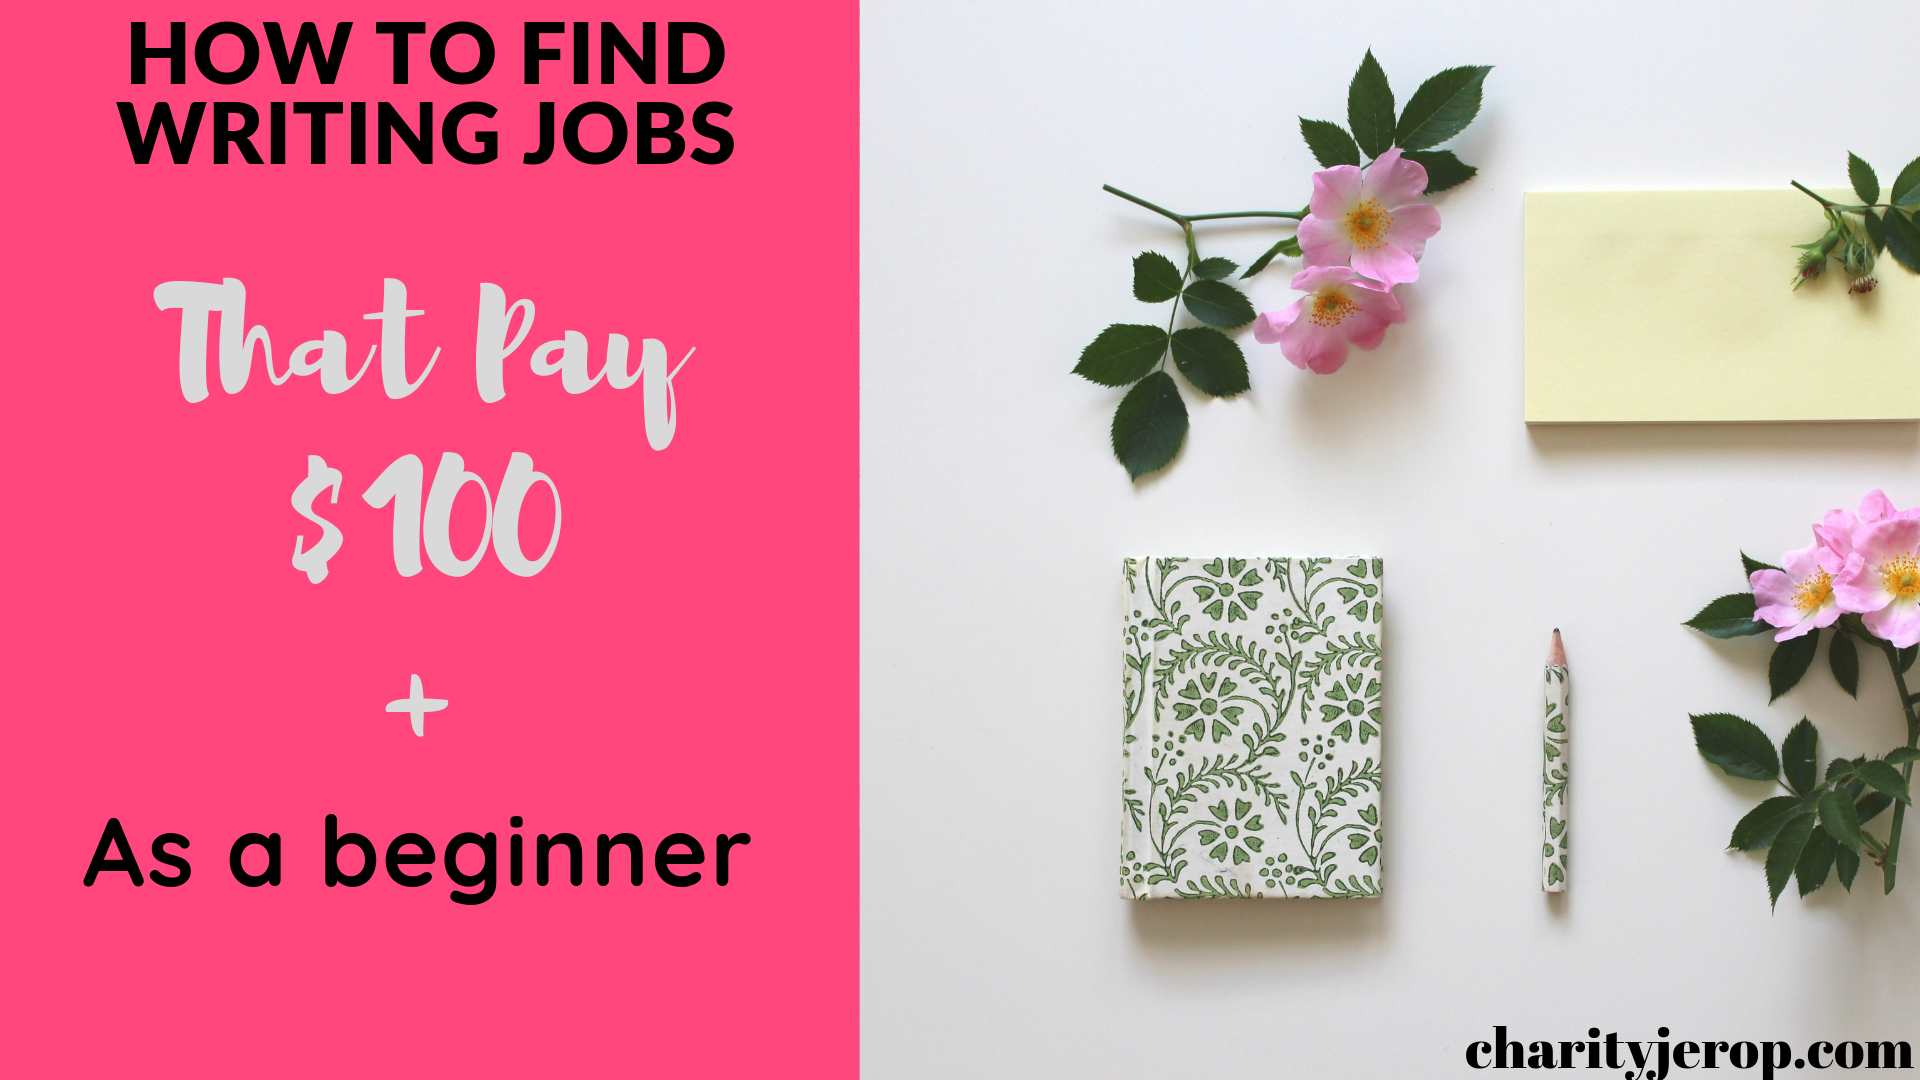 Get paid to write as a beginner